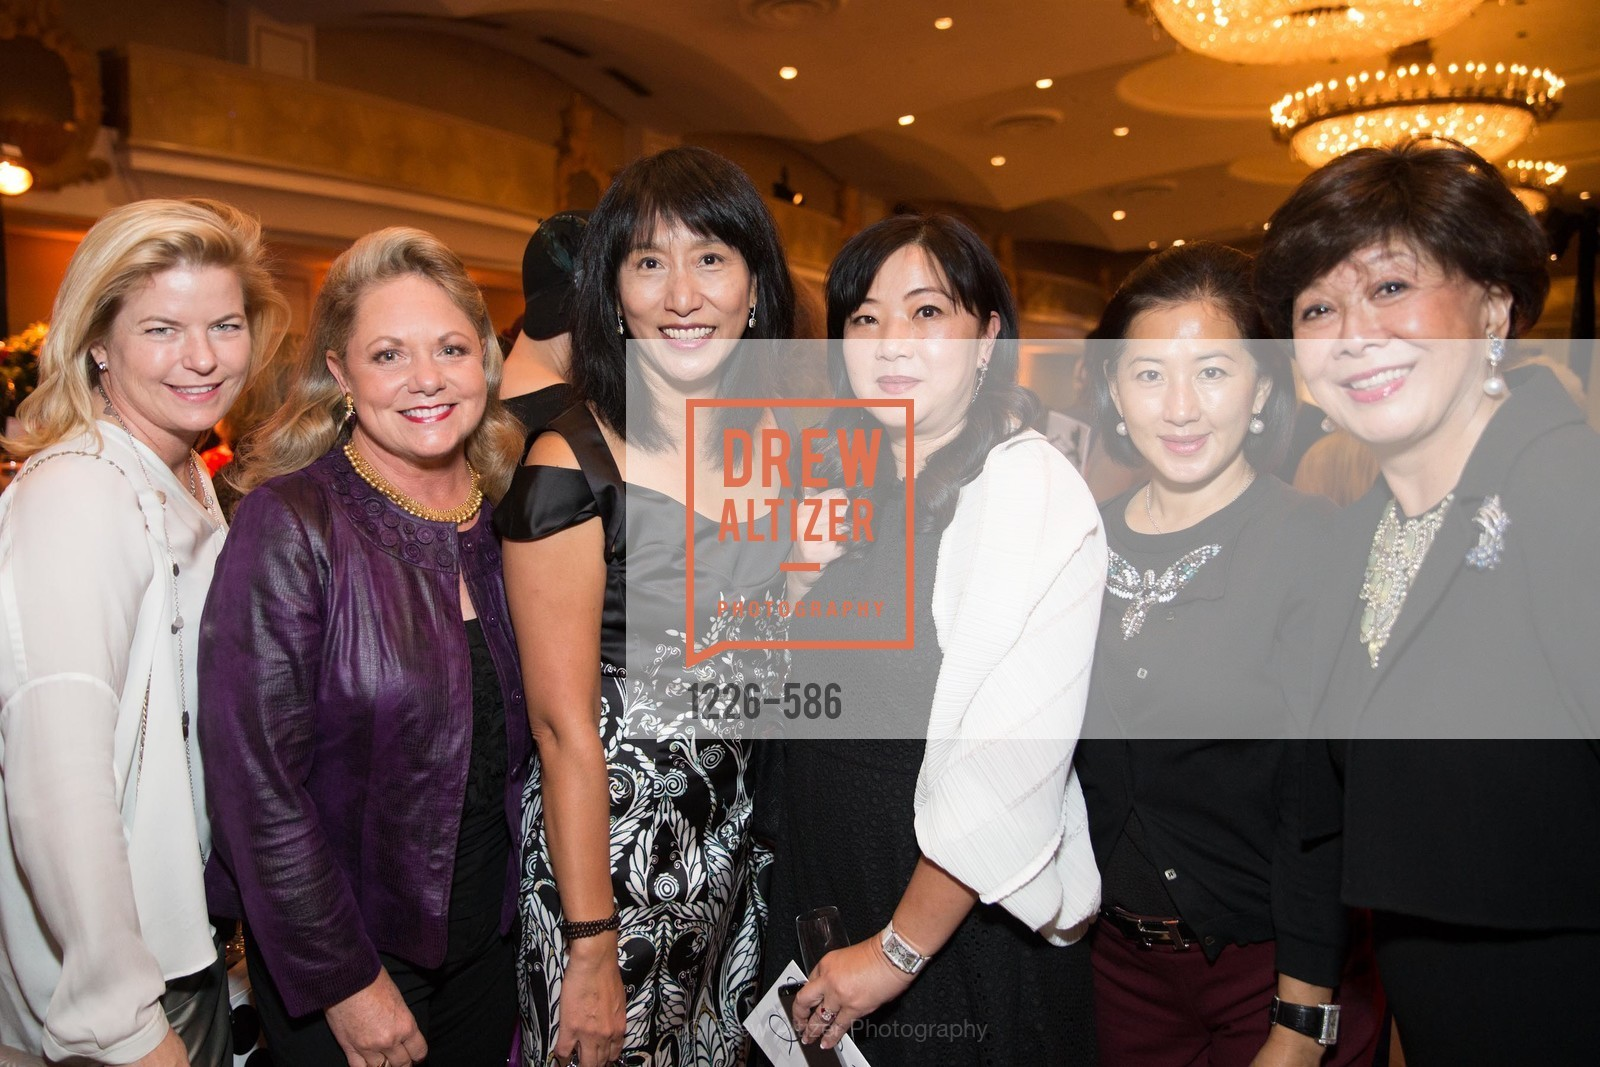 Heidi Marchesotti, Jill Toth, Sharon Juang, Mindy Sun, Gorretti Lui, Margaret Collins, 2014 Bay Area ARTHRITIS AUXILLIARY Benefit & Fashion Show, US, October 1st, 2014,Drew Altizer, Drew Altizer Photography, full-service agency, private events, San Francisco photographer, photographer california